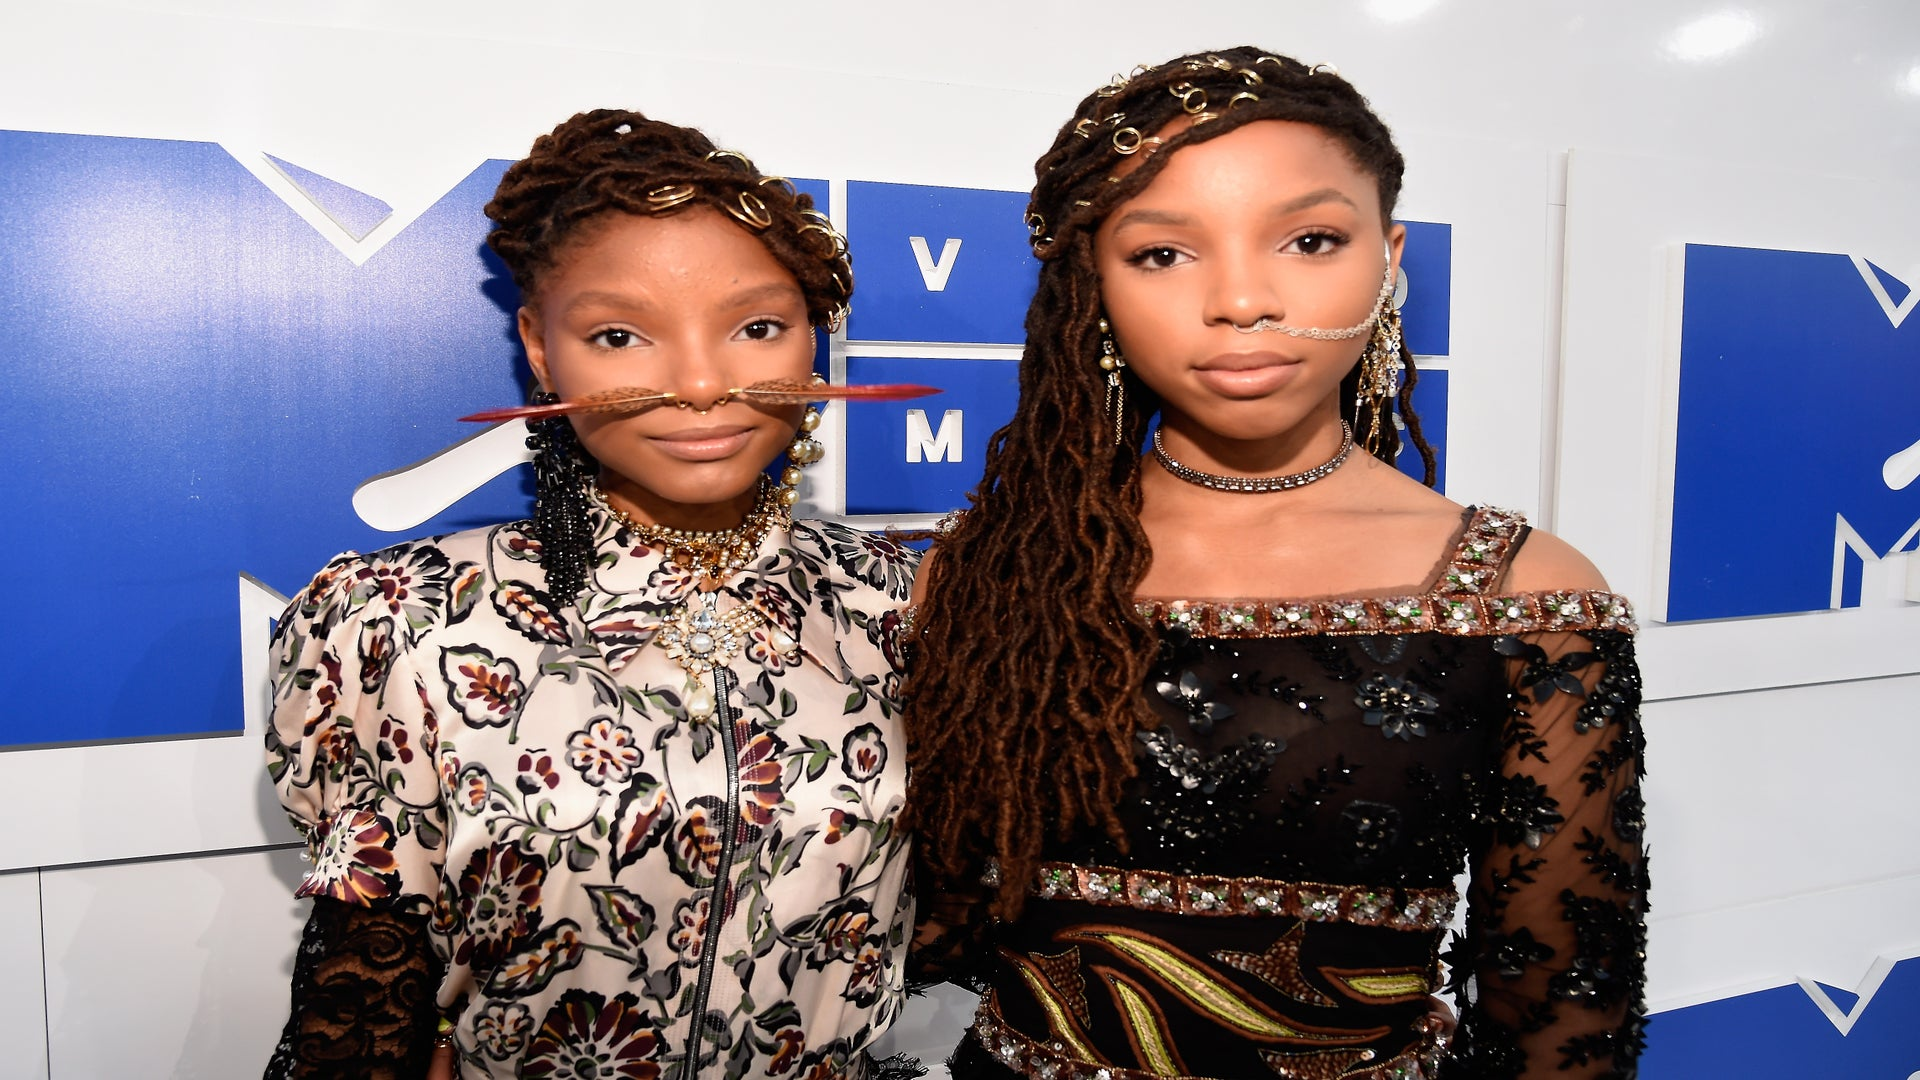 You Have To See Chloe & Halle's Face Jewelry At The 2016 VMAs